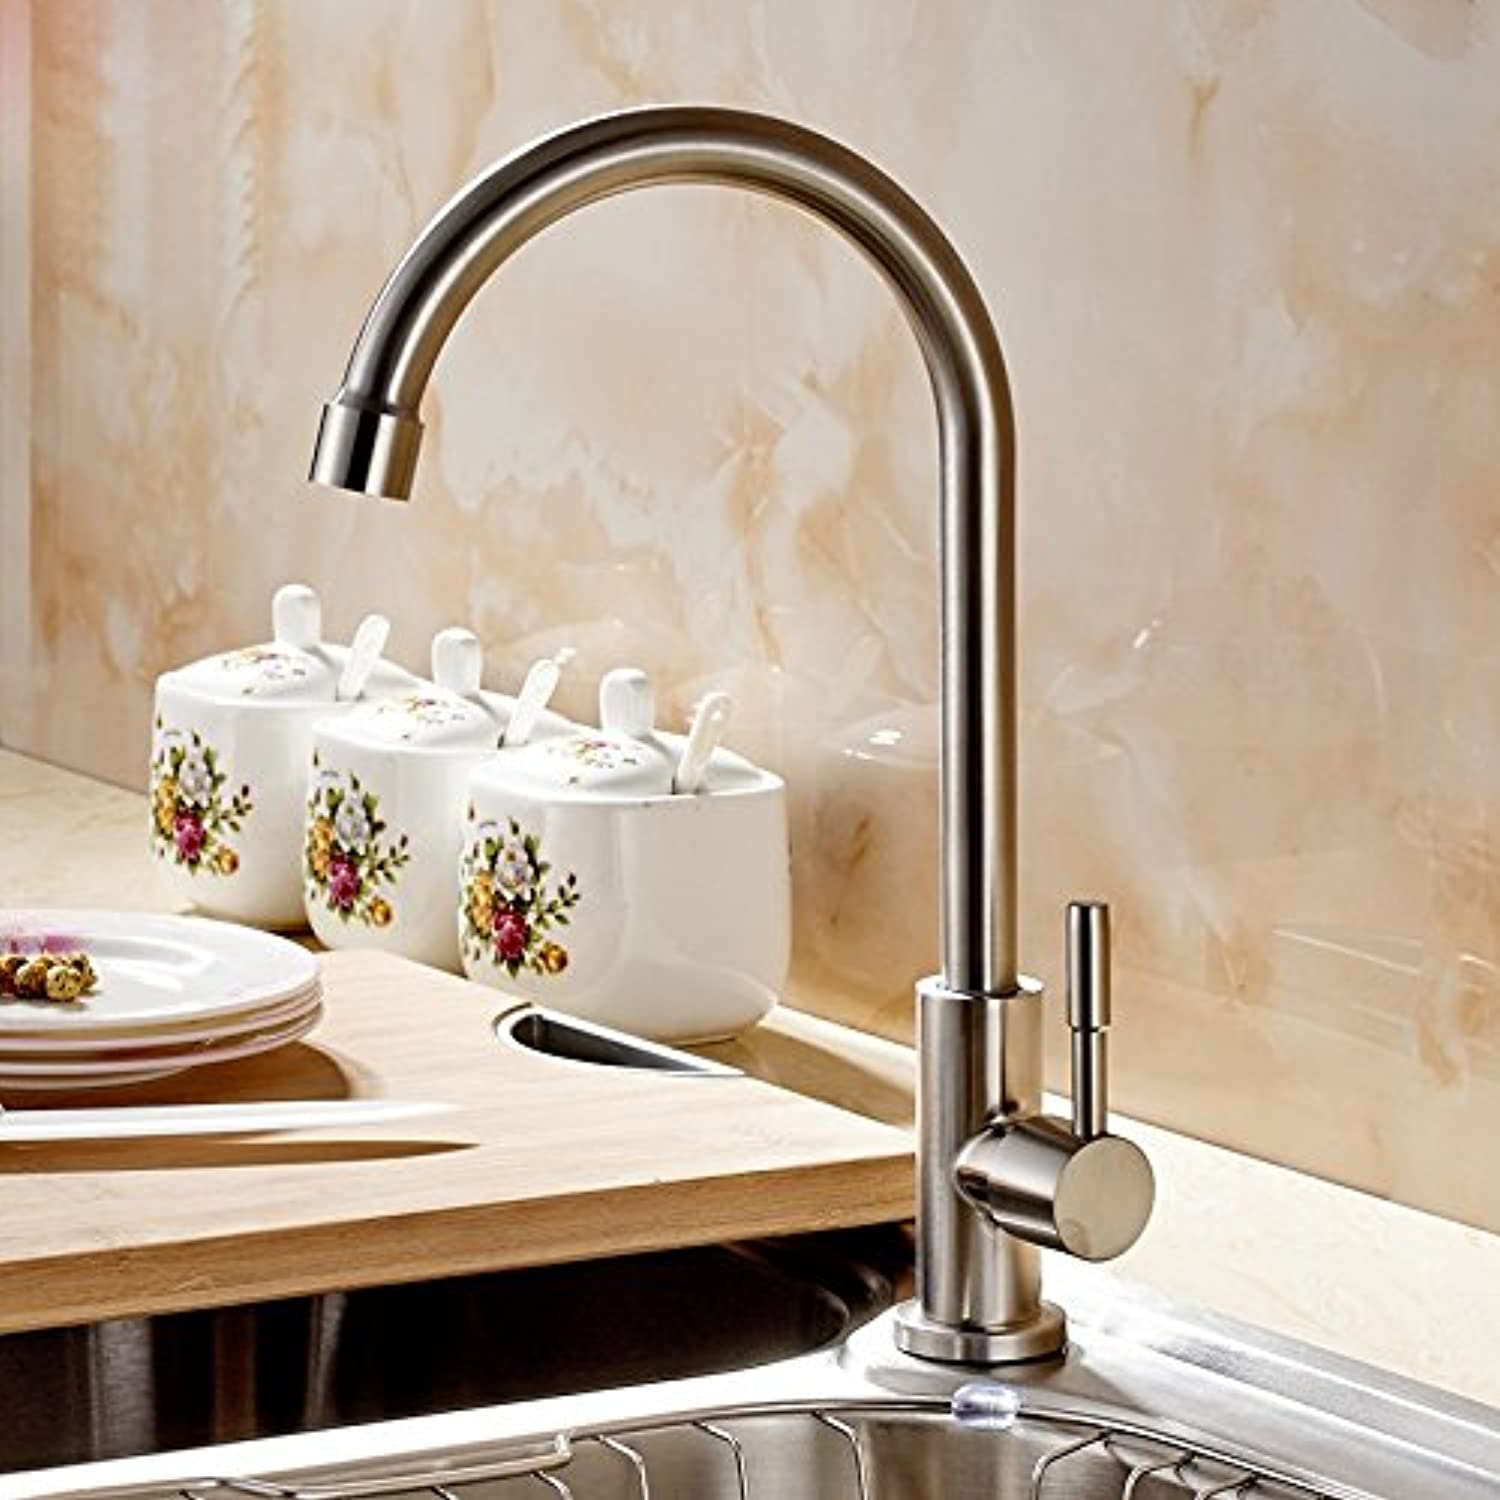 Commercial Single Lever Pull Down Kitchen Sink Faucet Brass Constructed Polished 304 Stainless Steel Kitchen Single Cold Faucet, Sink Bowl, Pool, redating Sink Faucet